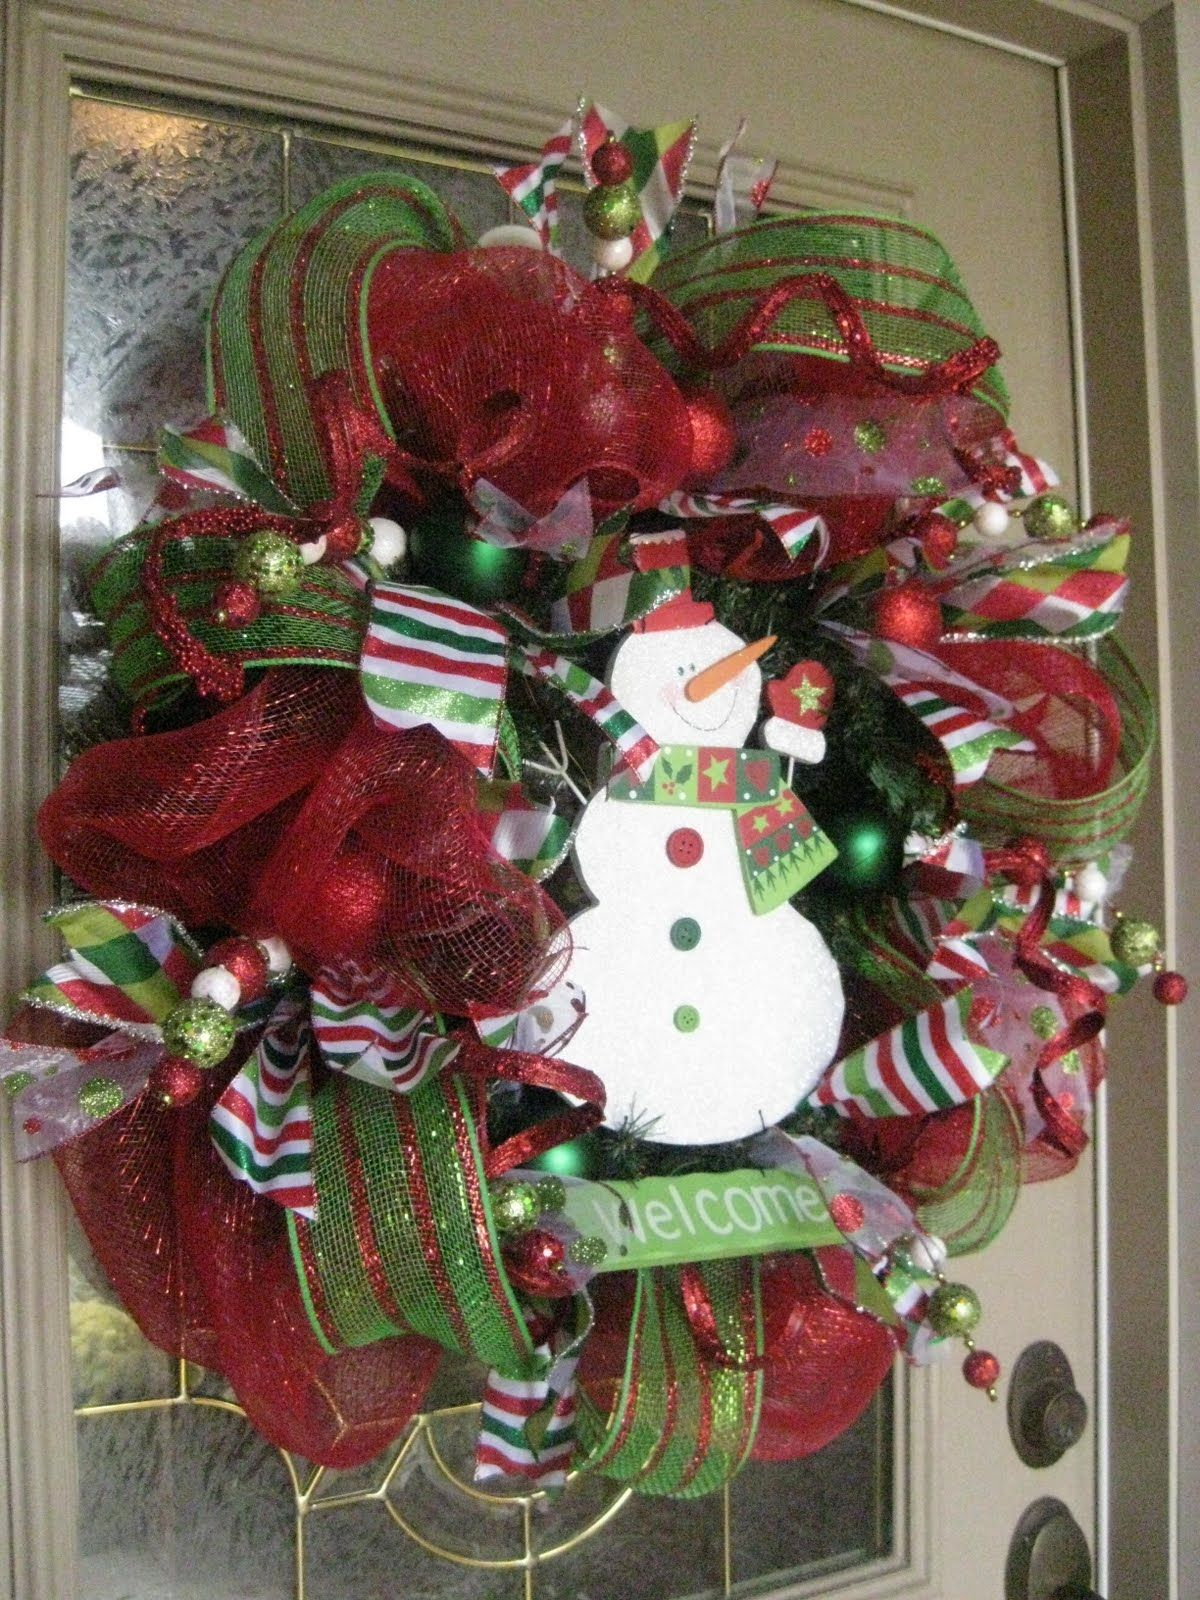 picturesofdecomeshchristmaswreaths gathered most of my supplies from hobby lobby michaels and - Hobby Lobby Christmas Wreaths